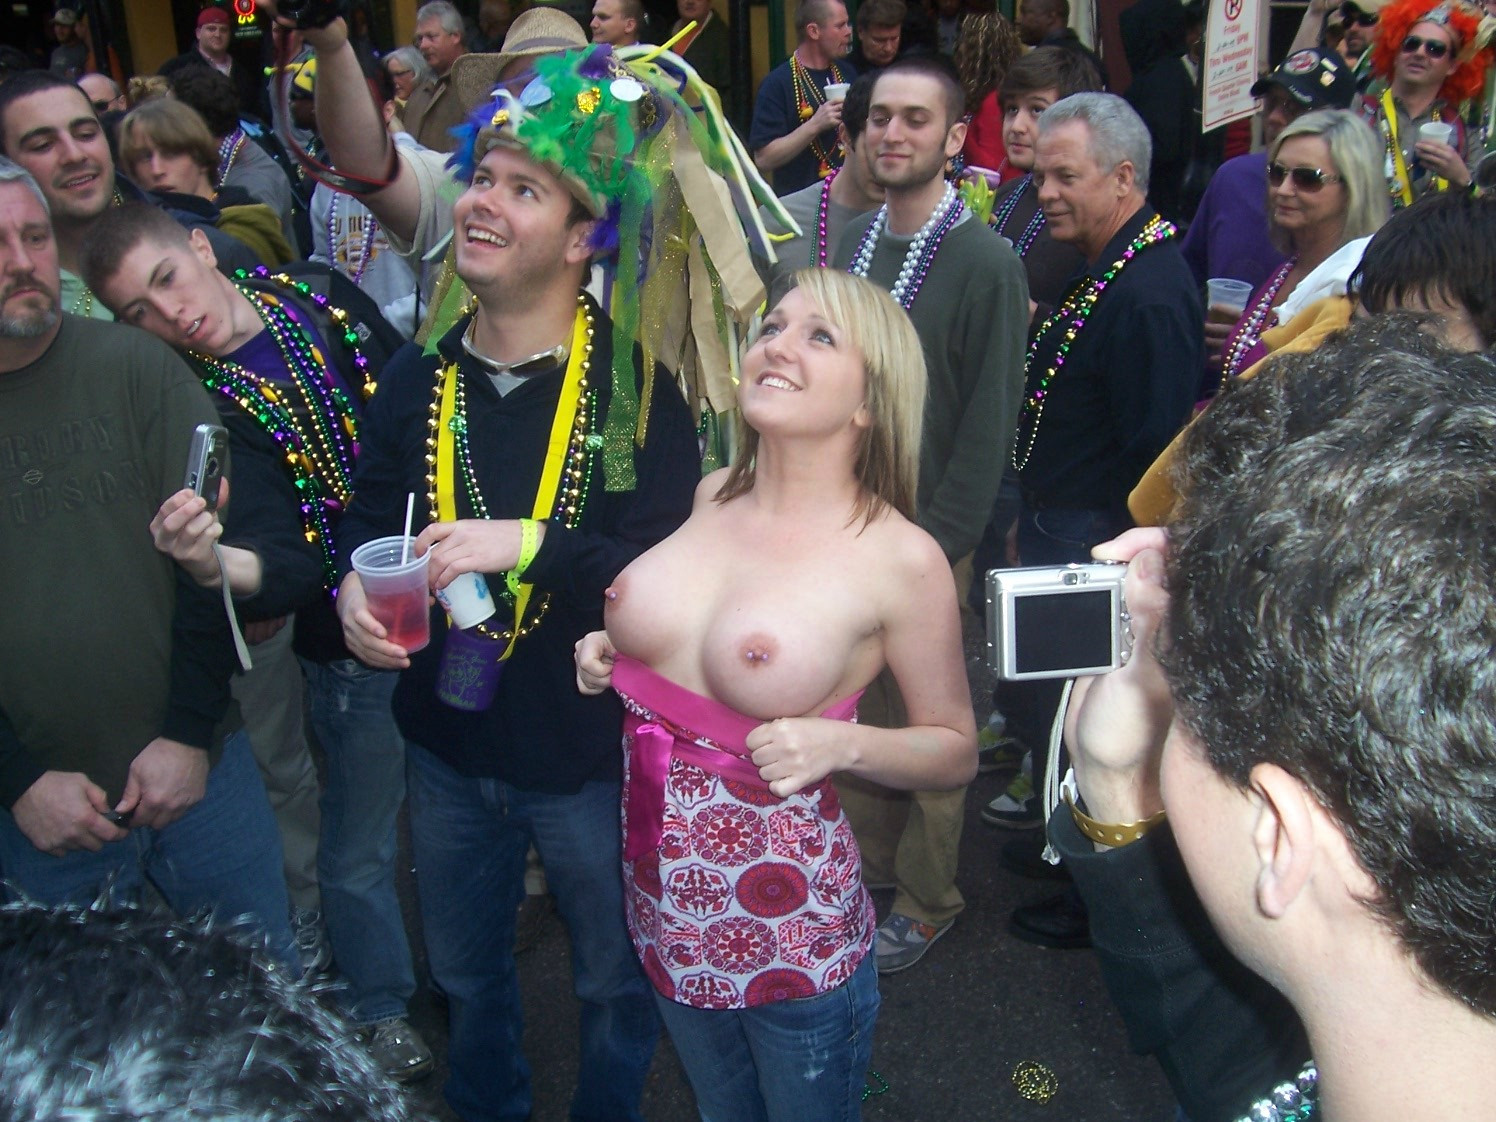 Boobs their mardi gras girls flashing